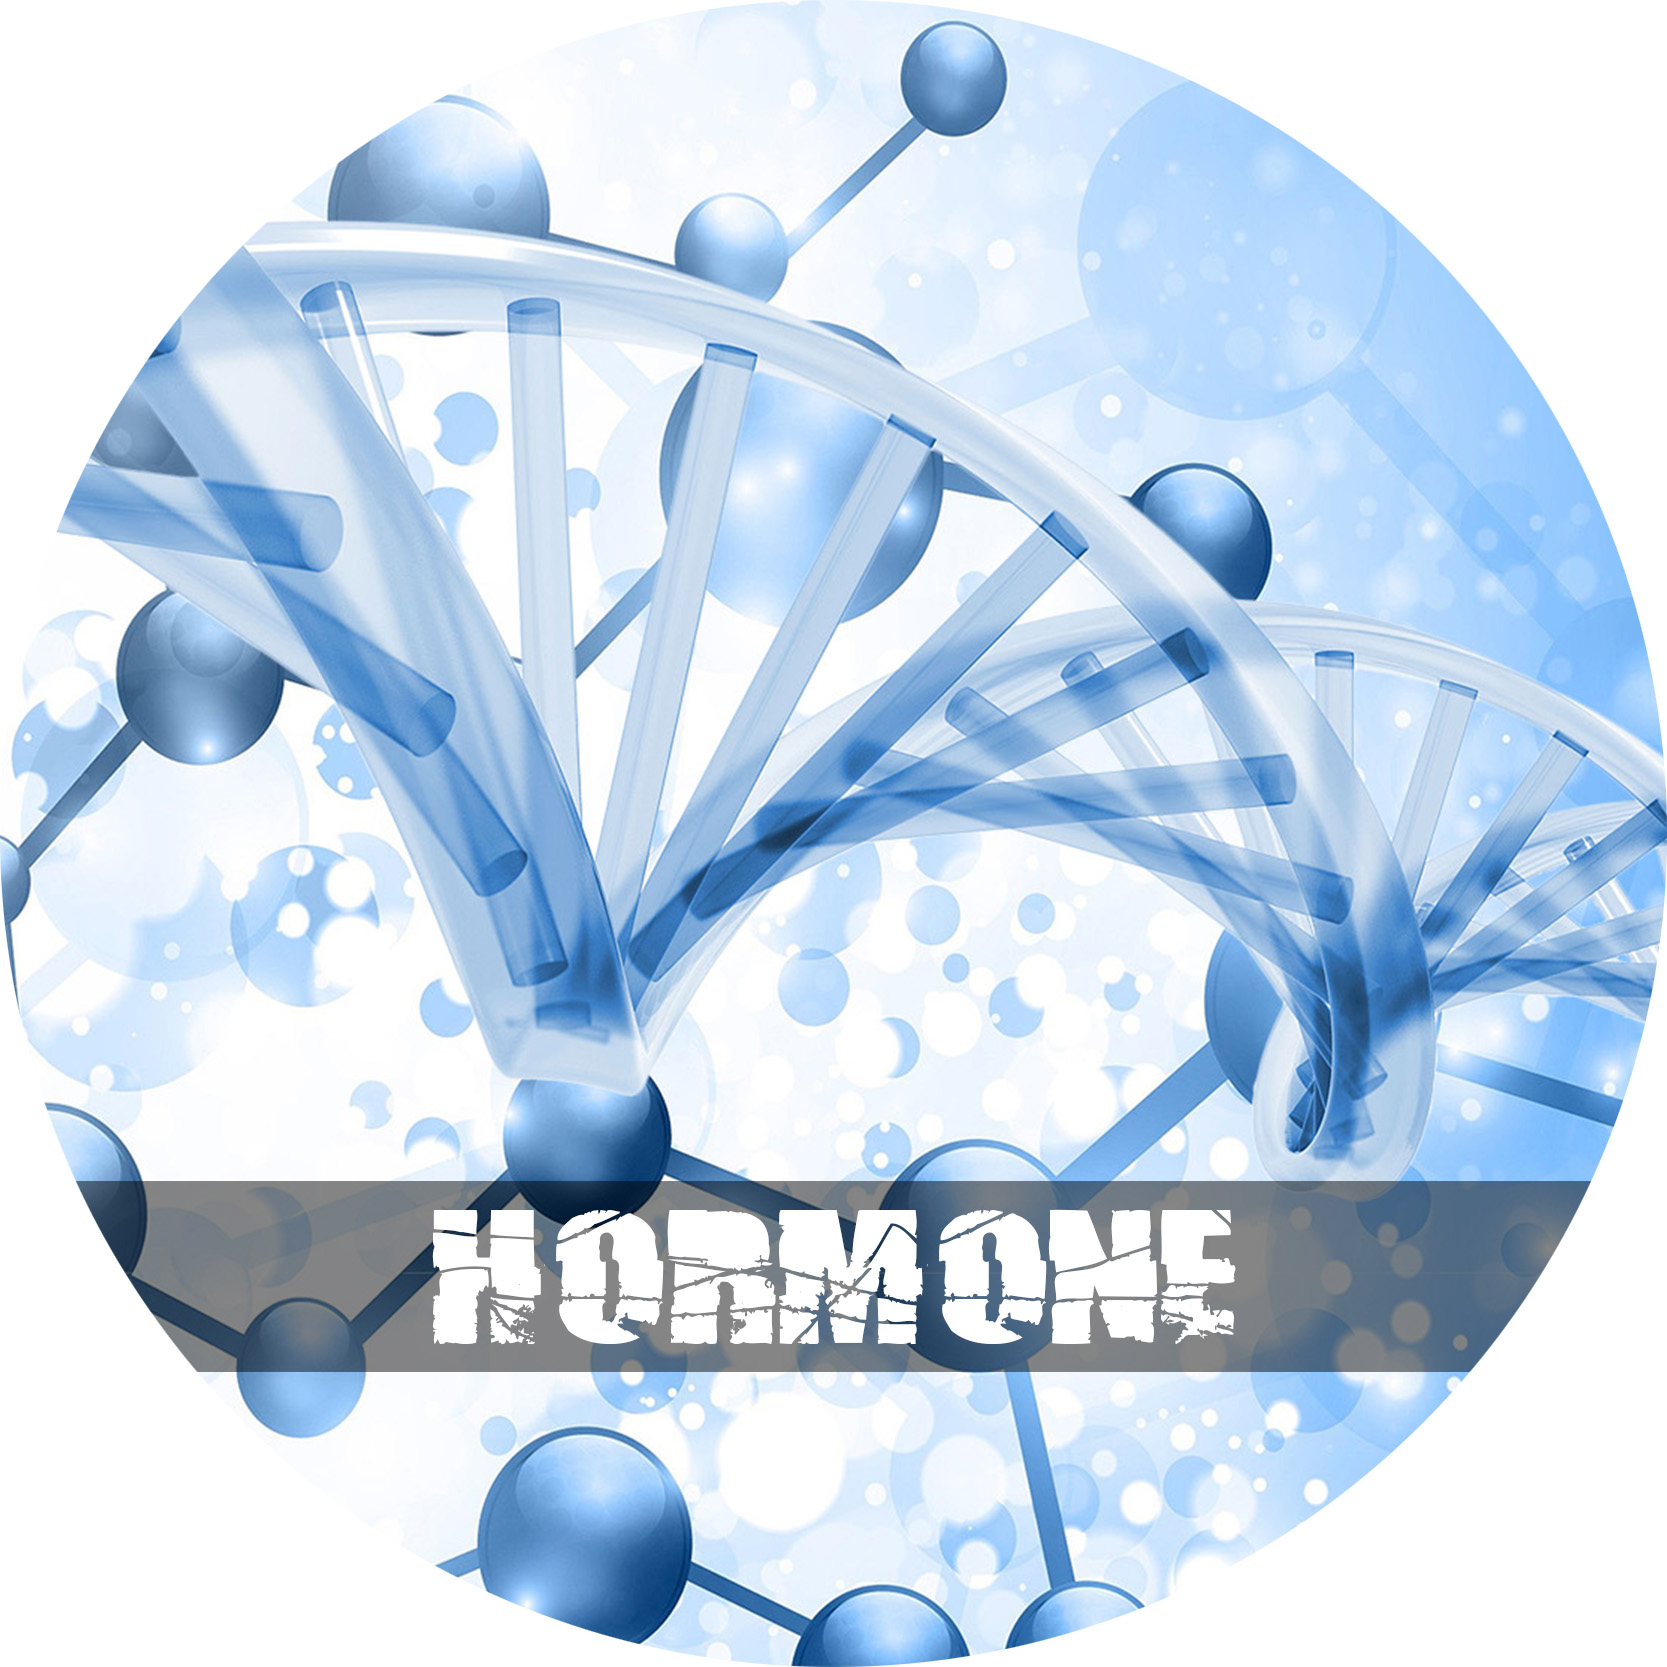 Hormone Regulation Circle - AHP.jpg